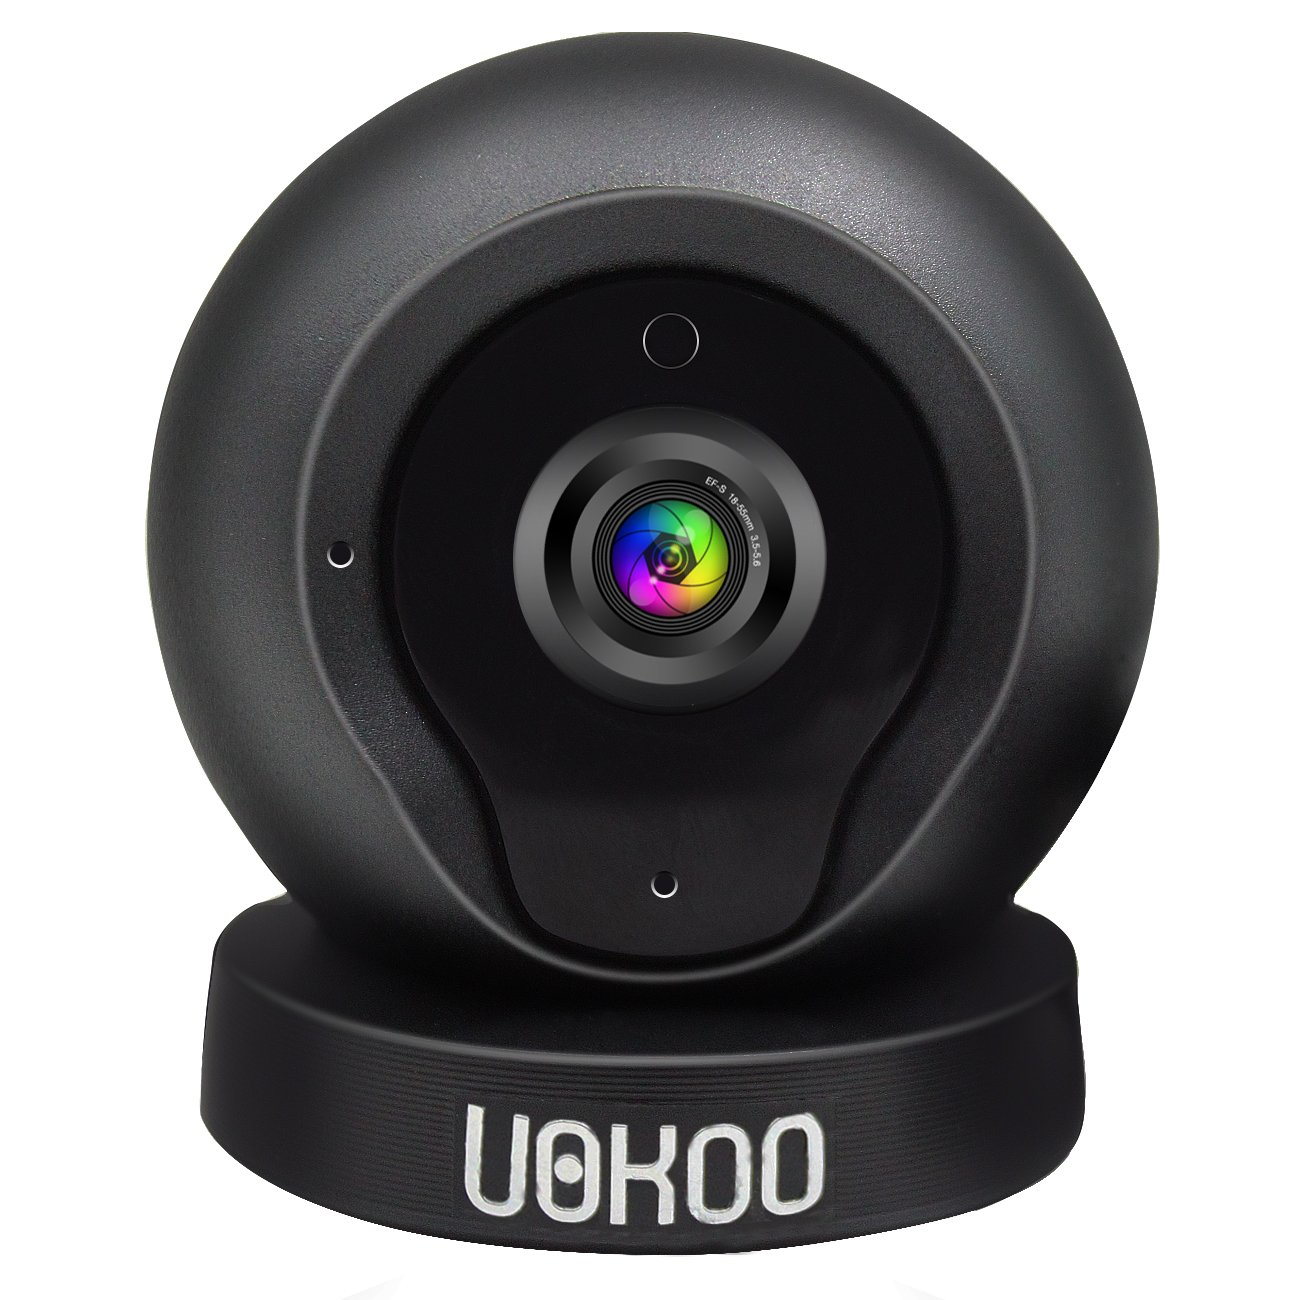 Wireless Security Camera,IP Camera,security camera,UOKOO 720P HD Home WiFi Wireless Security Surveillance Camera with Motion Detection Remote Monitoring Q1 (Black)